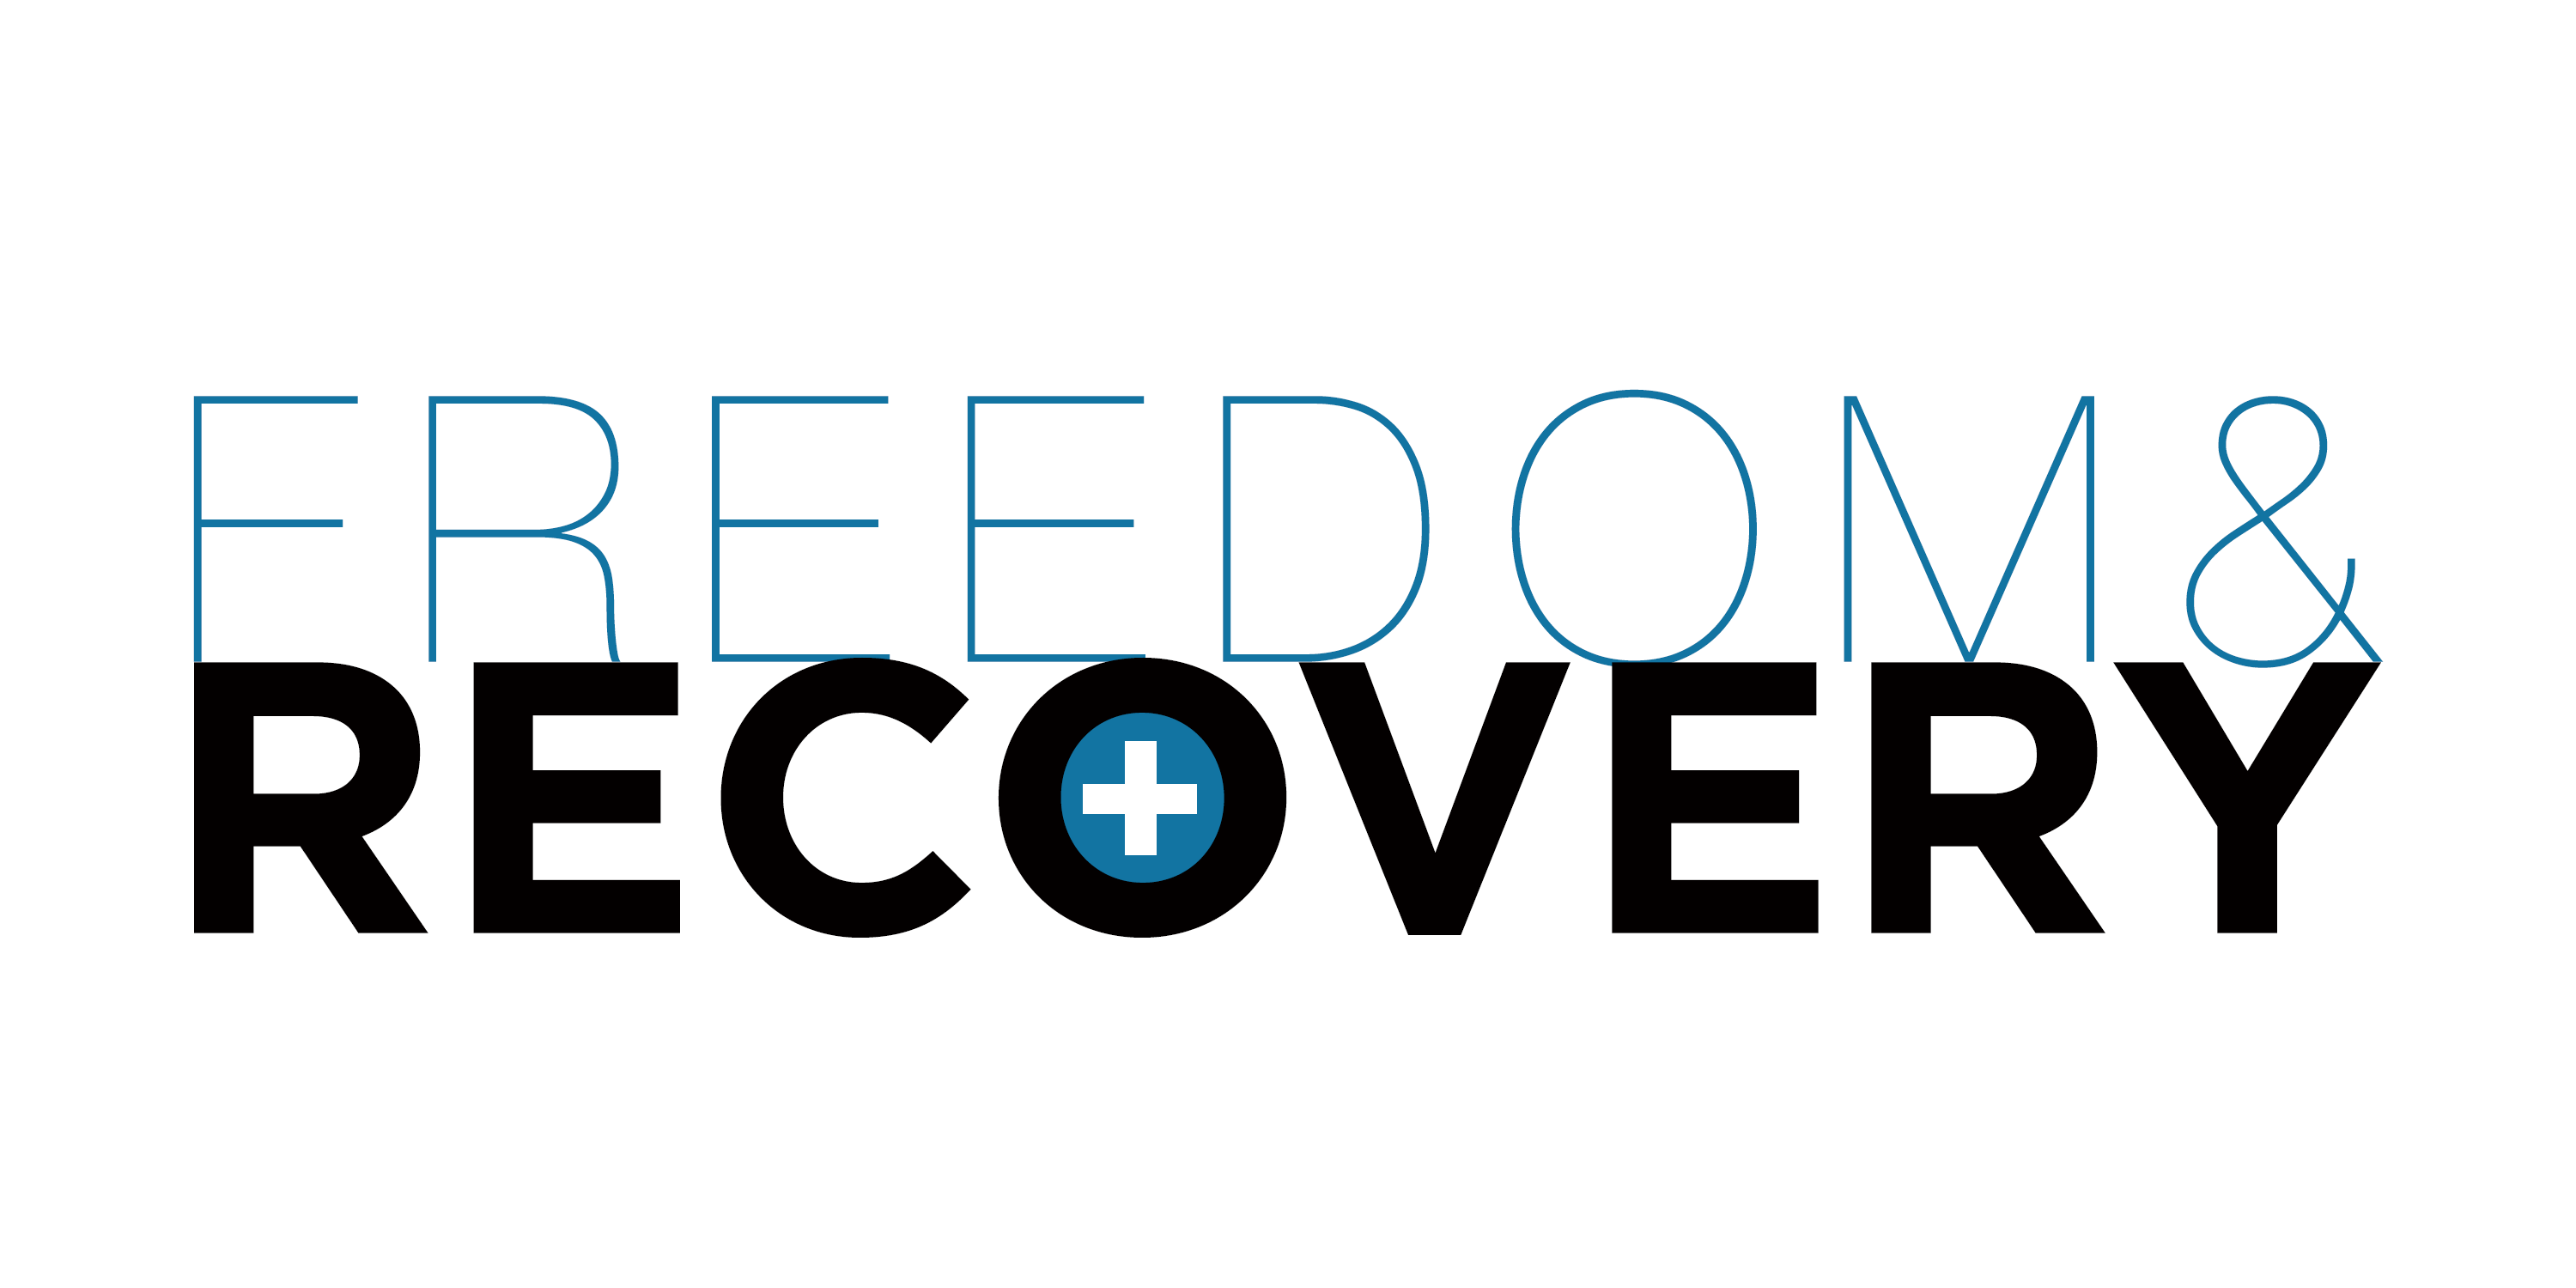 Freedom recovery2